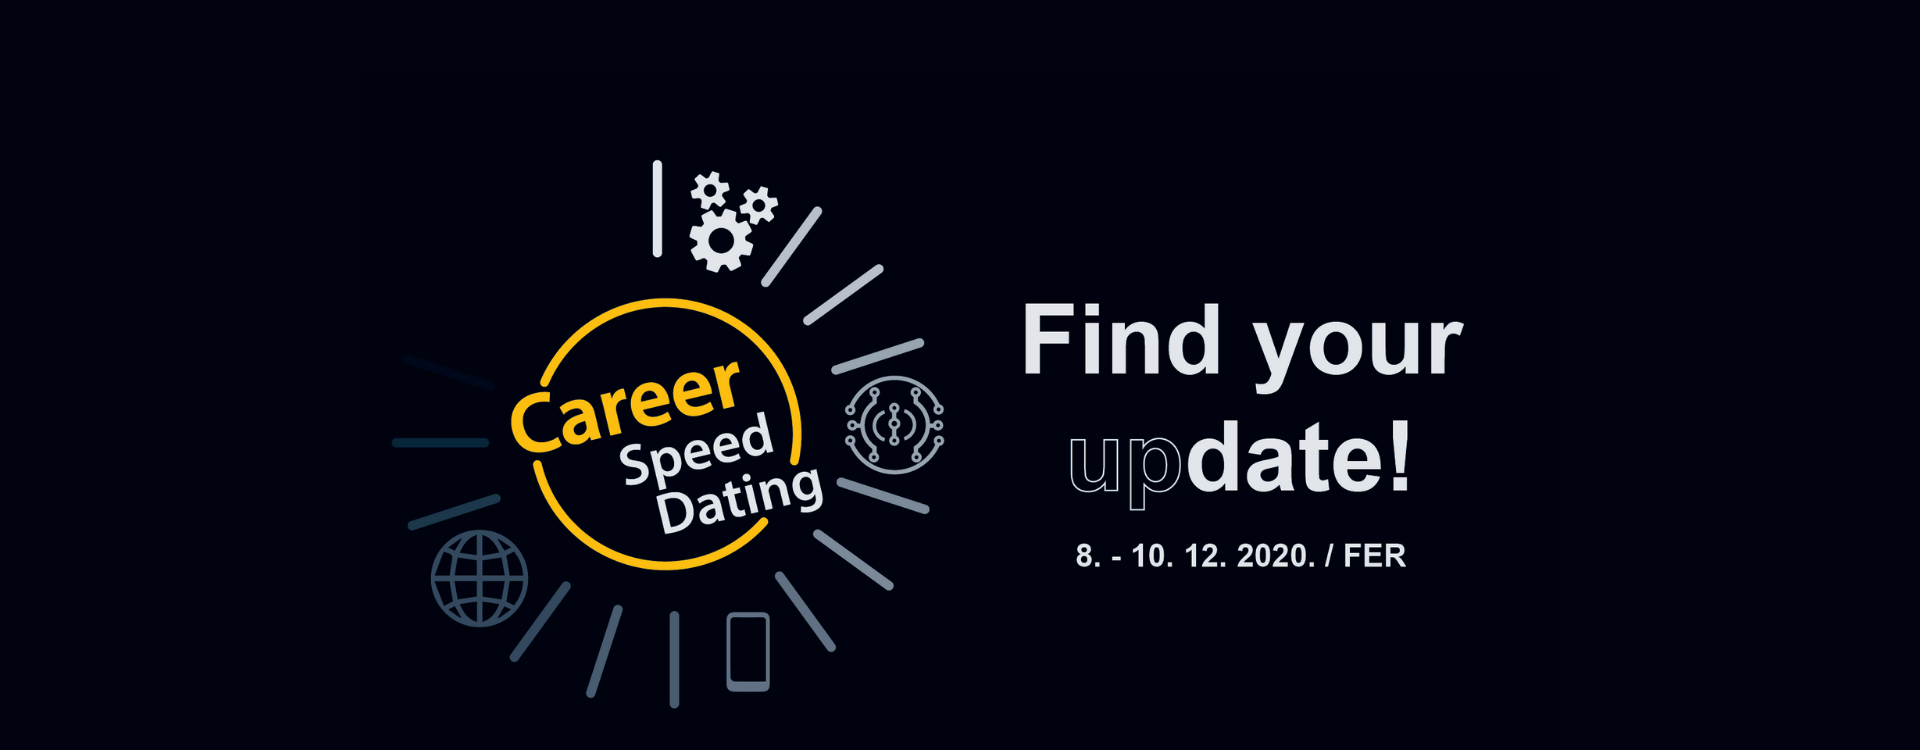 Počinju prijave poduzeća za Career Speed Dating 2020.